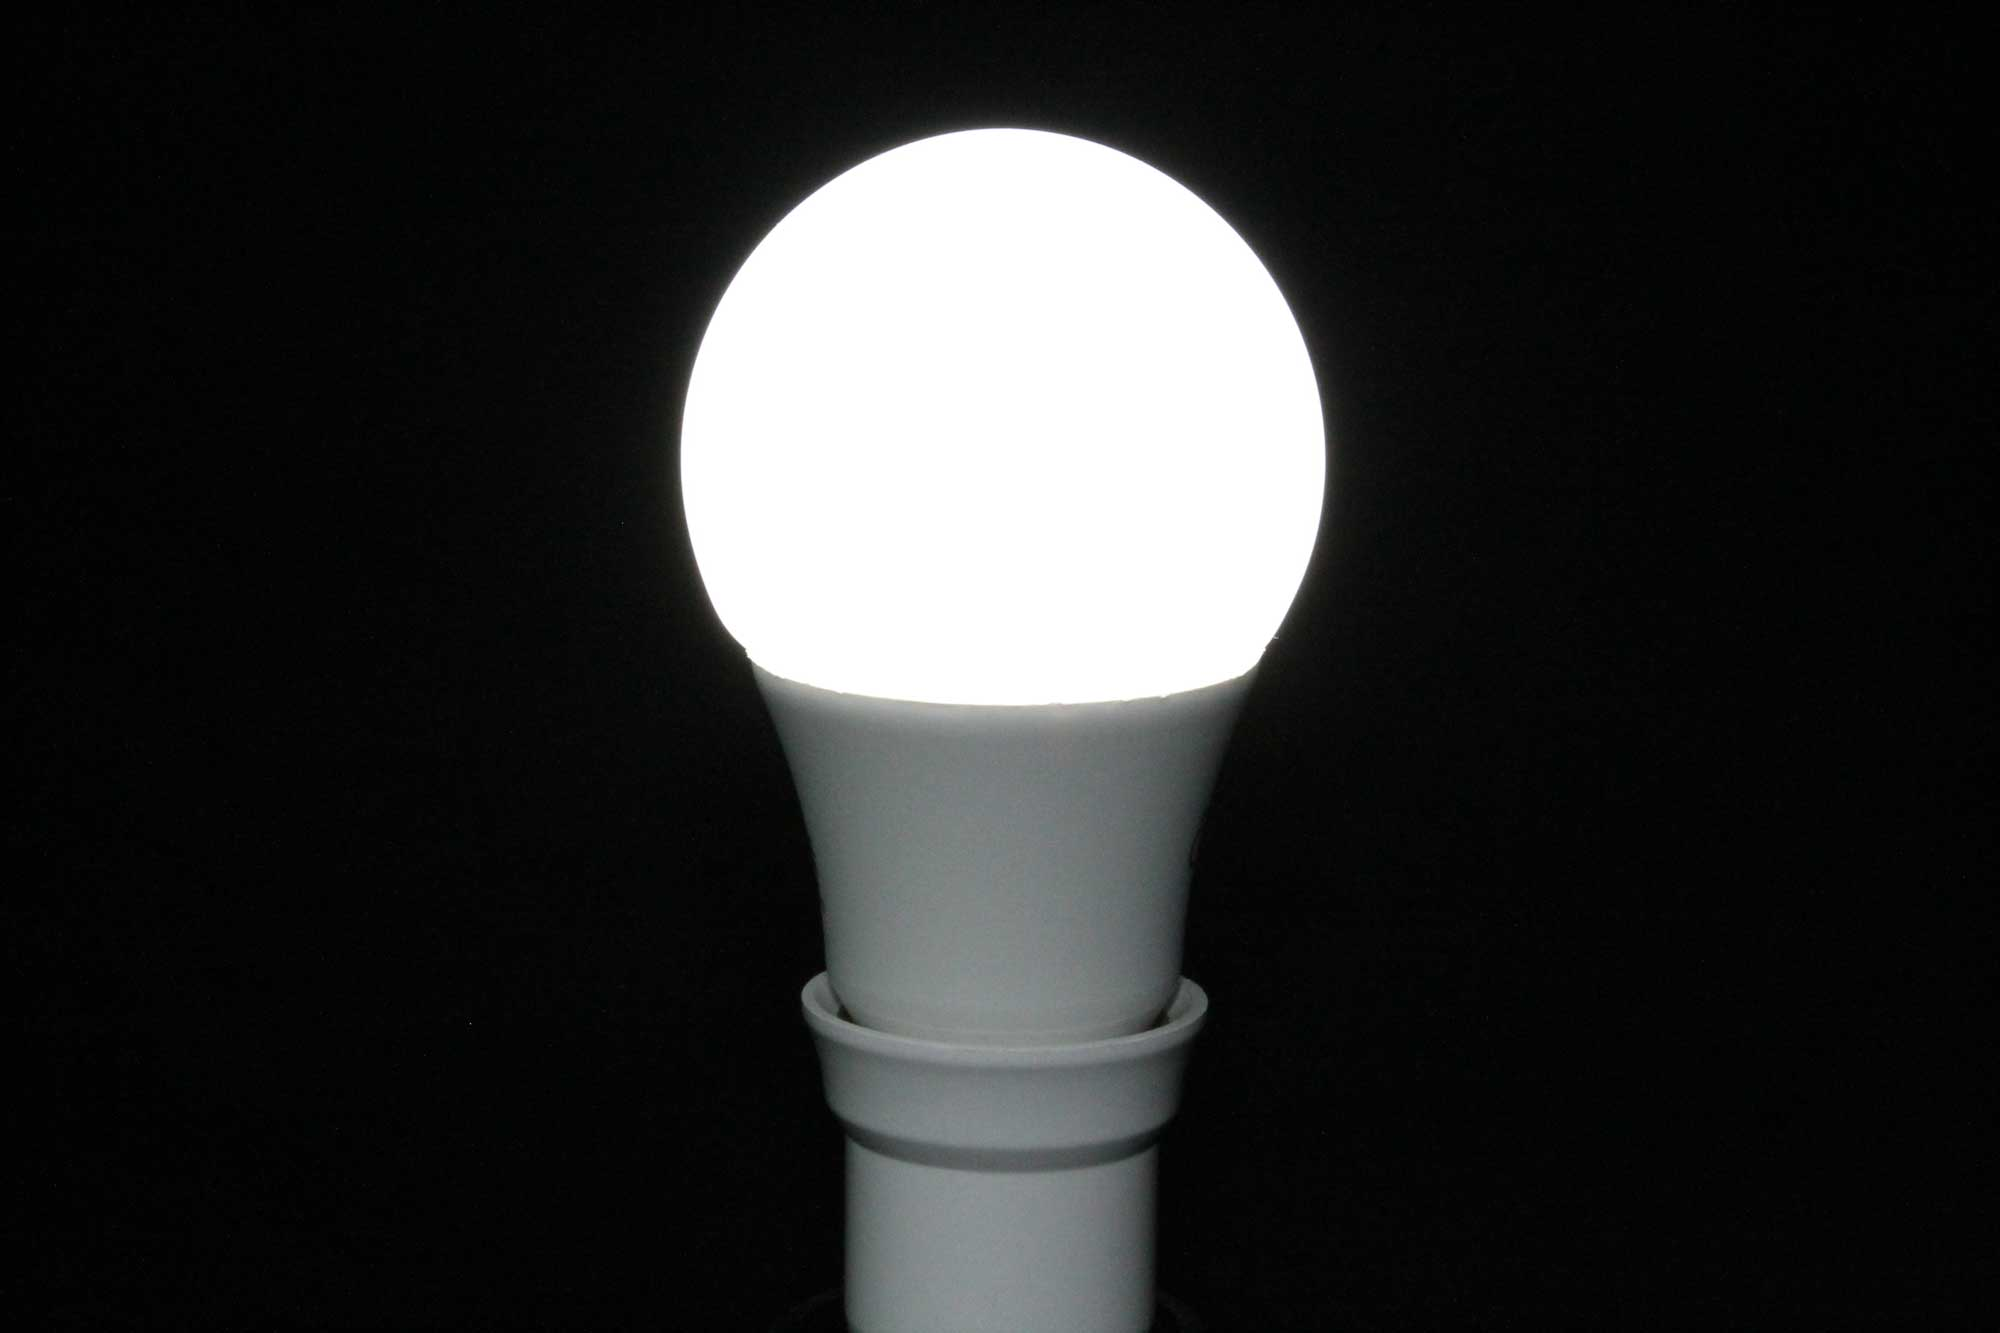 Zeta Non-Flashing LED Belisha Lamp